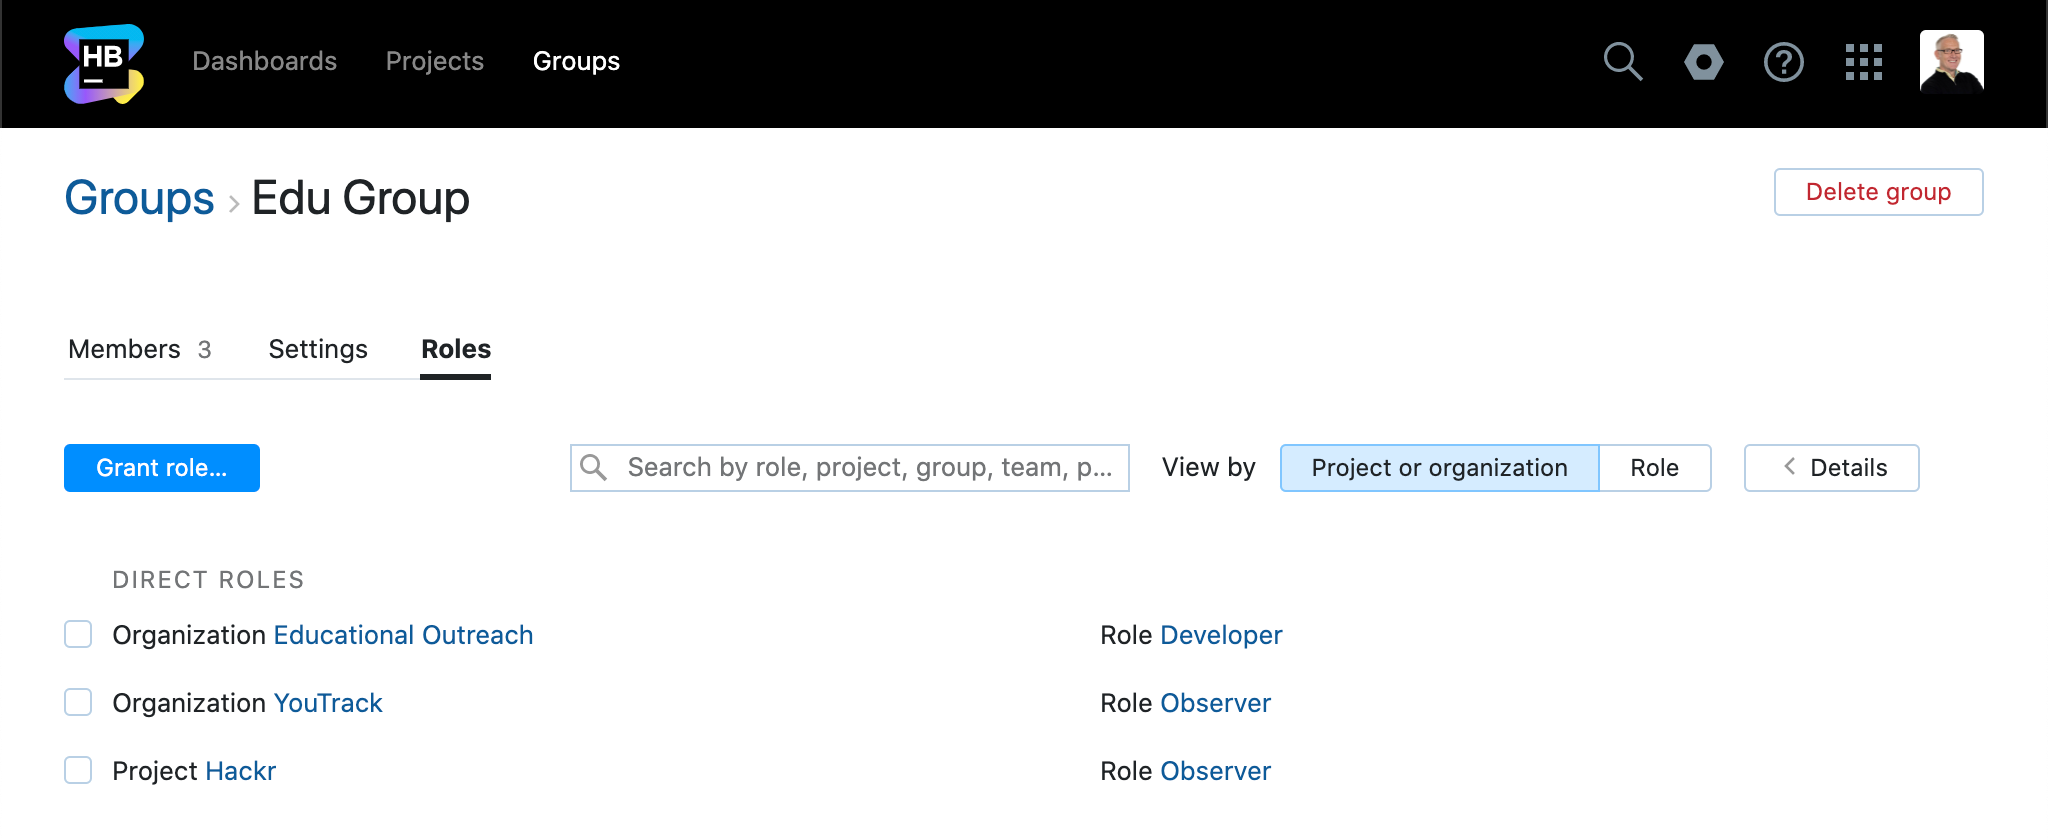 Group roles by project